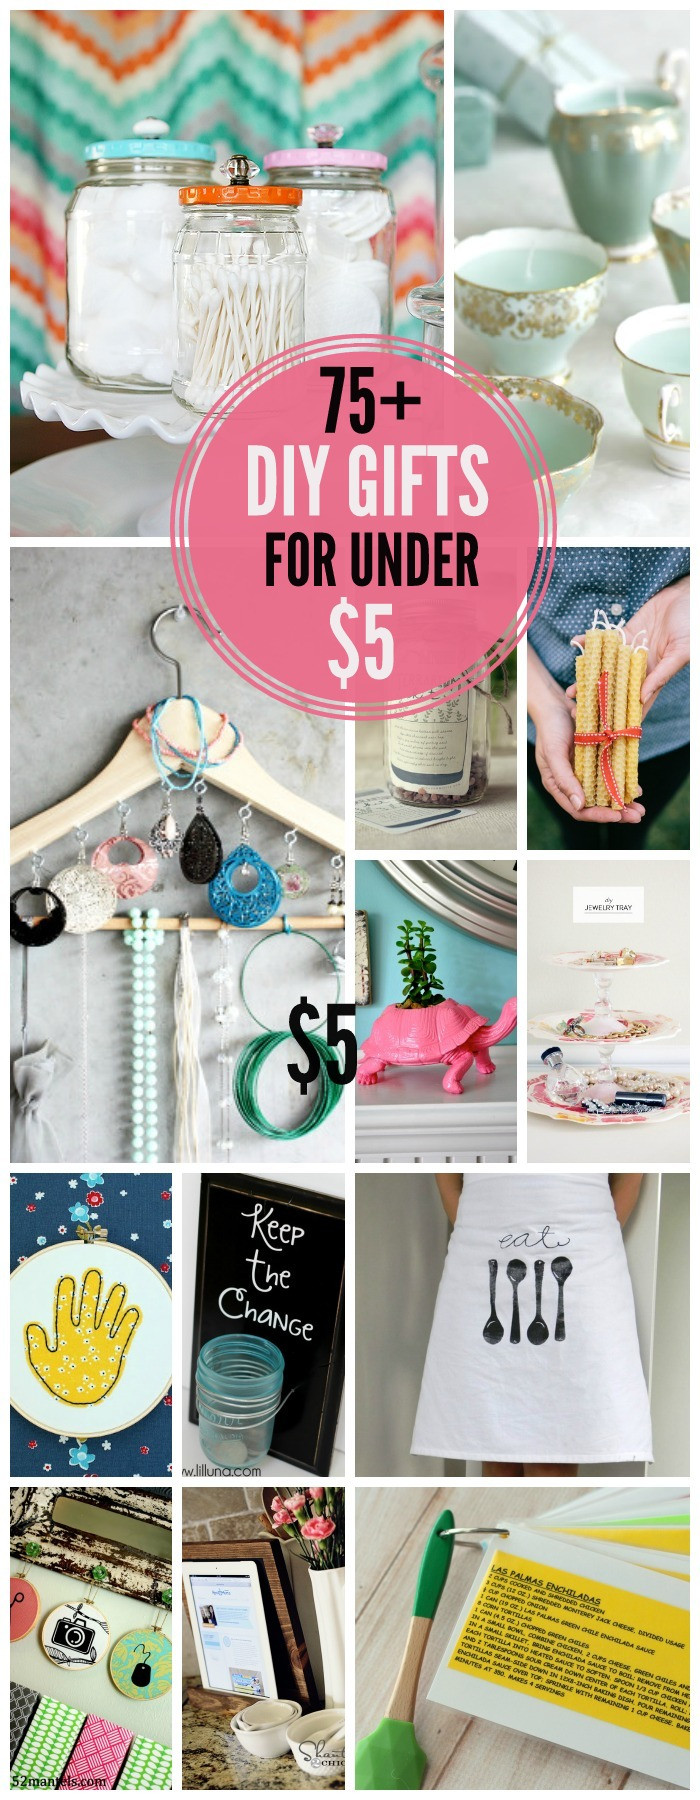 Best ideas about Gift Ideas With Pictures . Save or Pin Inexpensive Gift Ideas Now.